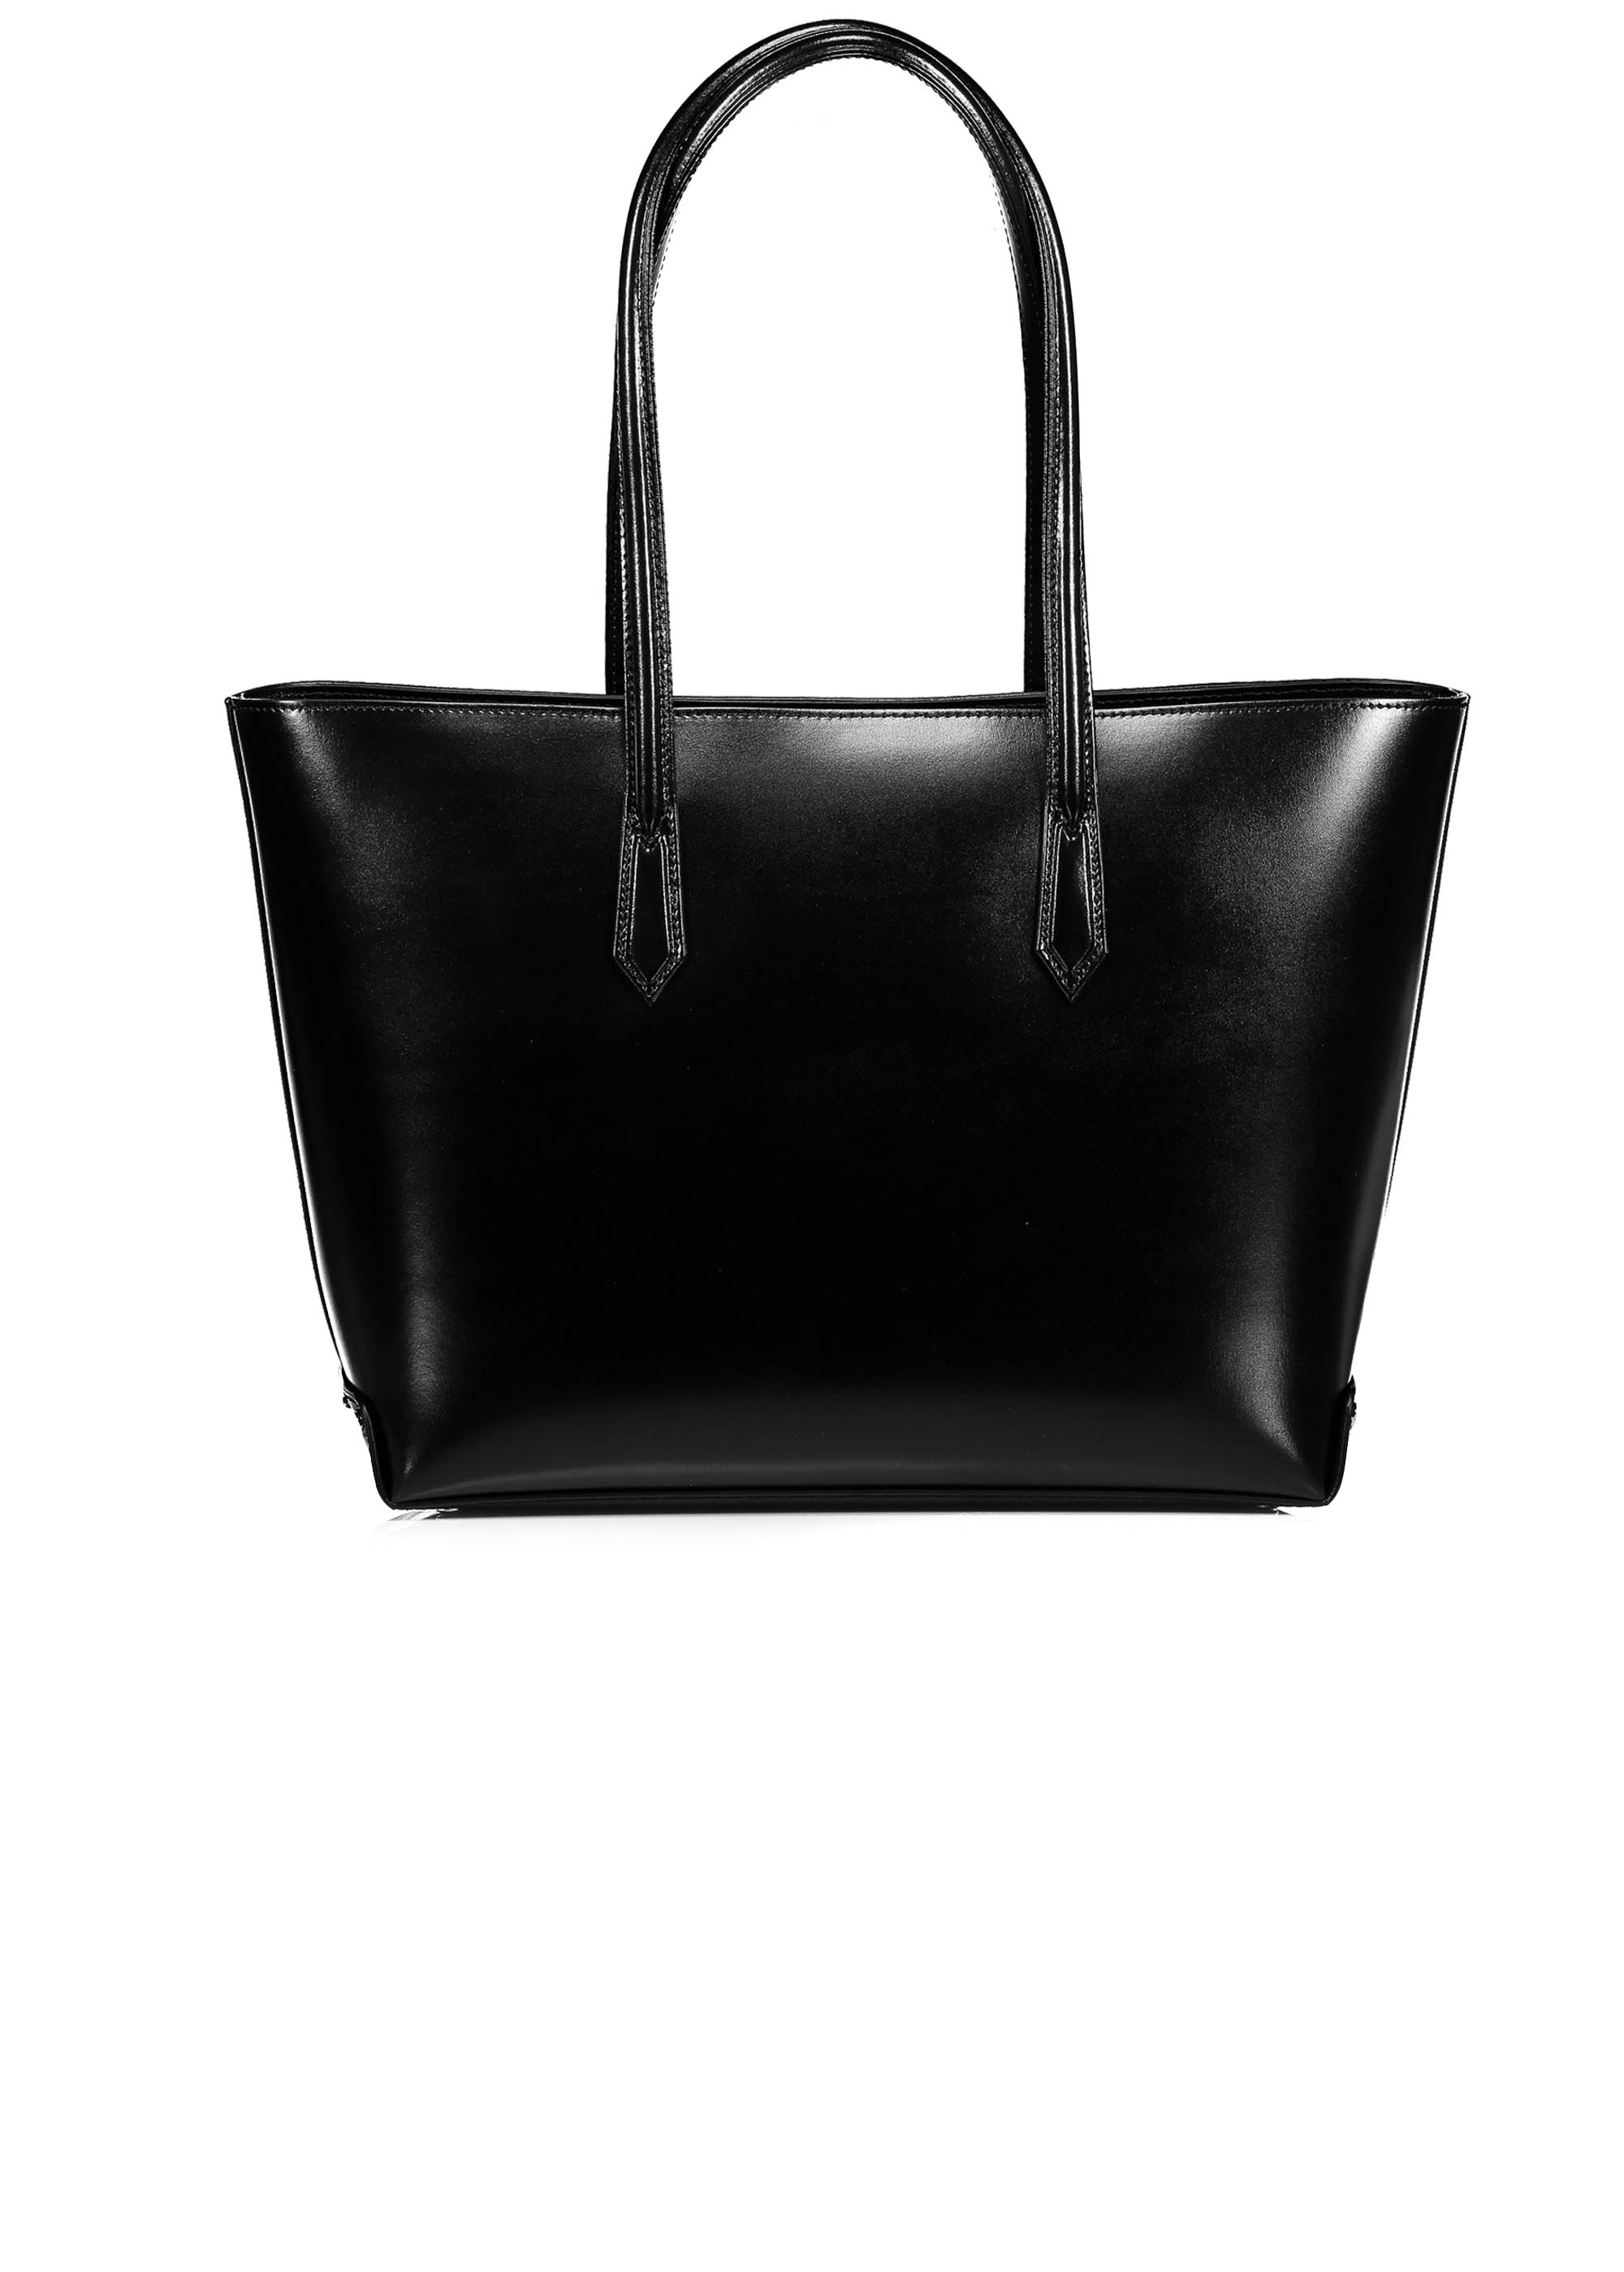 3f6f64bfde Vivienne Westwood Accessories Sarah Large Shopper Bag - Black - Bags ...